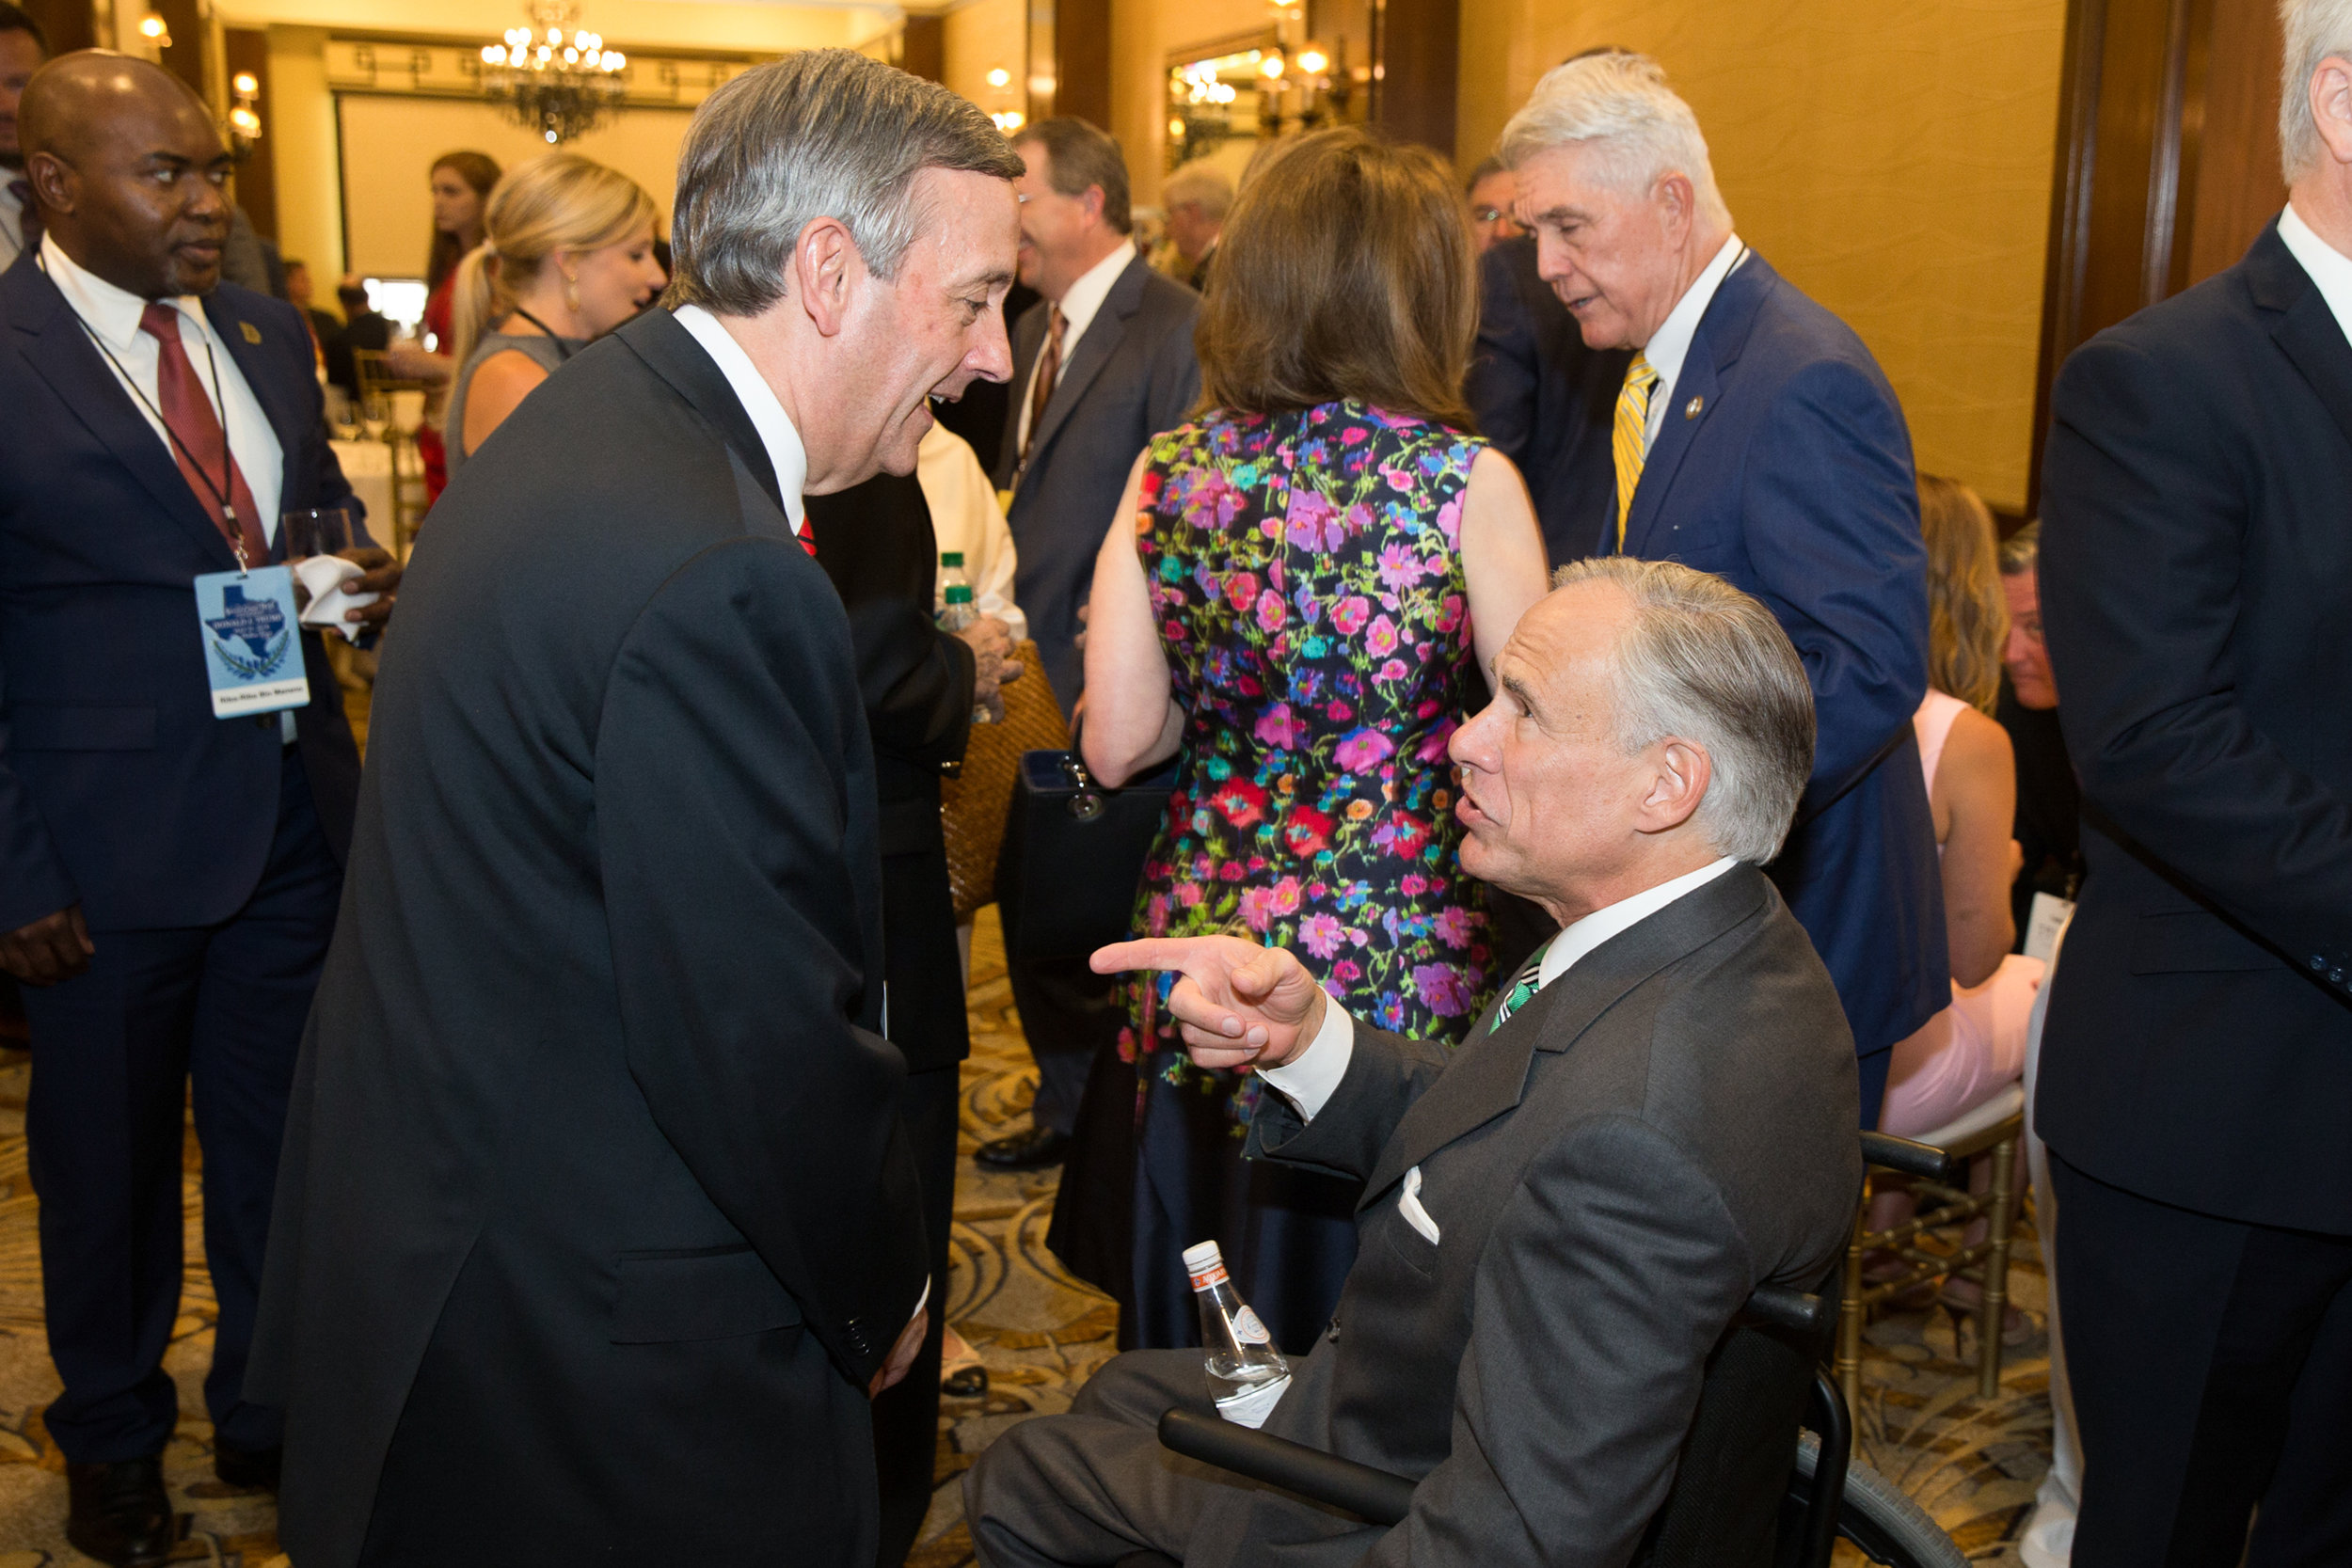 Governor Greg Abbott with Pastor Robert Jeffress at the Trump Victory event in 2018.